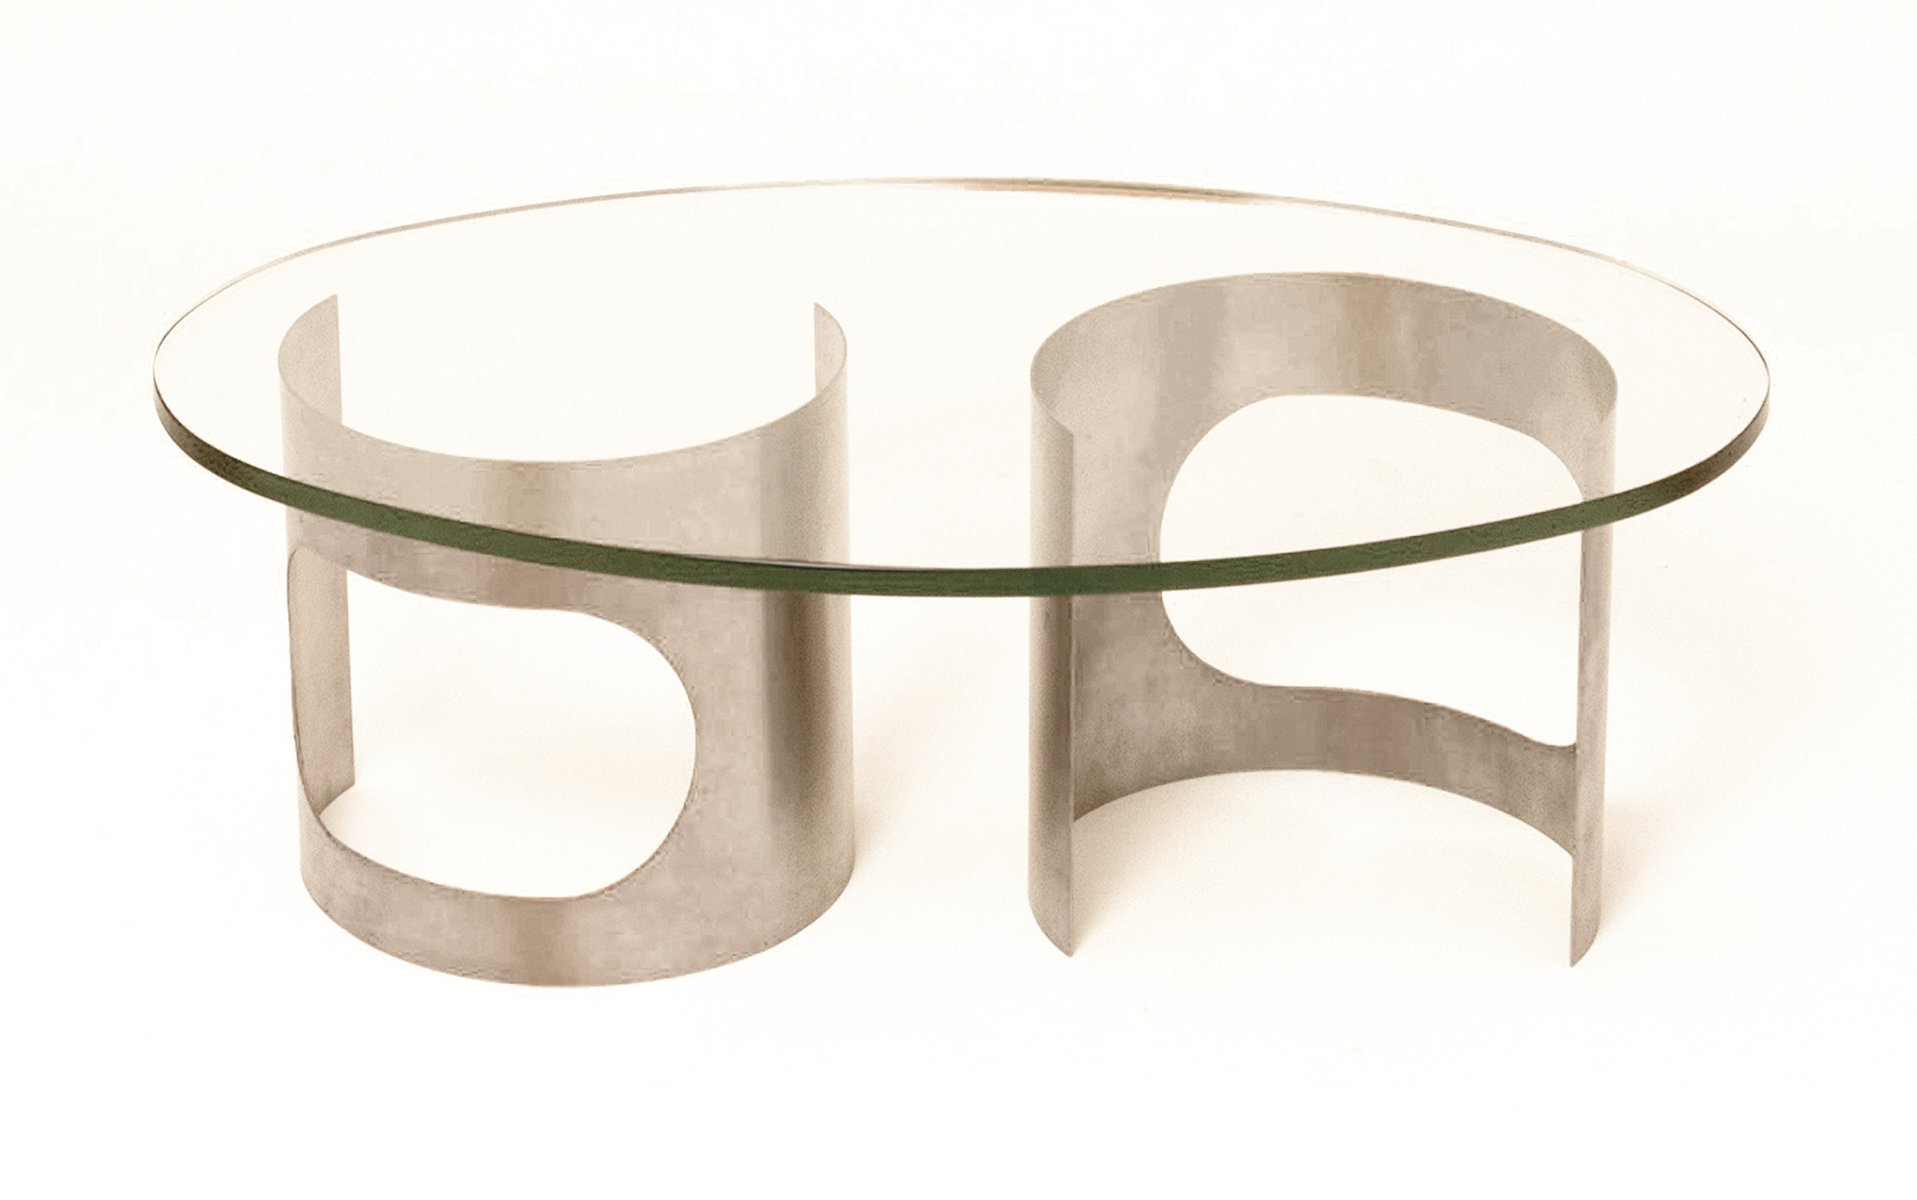 French Spherical Stainless Steel And Gl Top Coffee Table 1970s